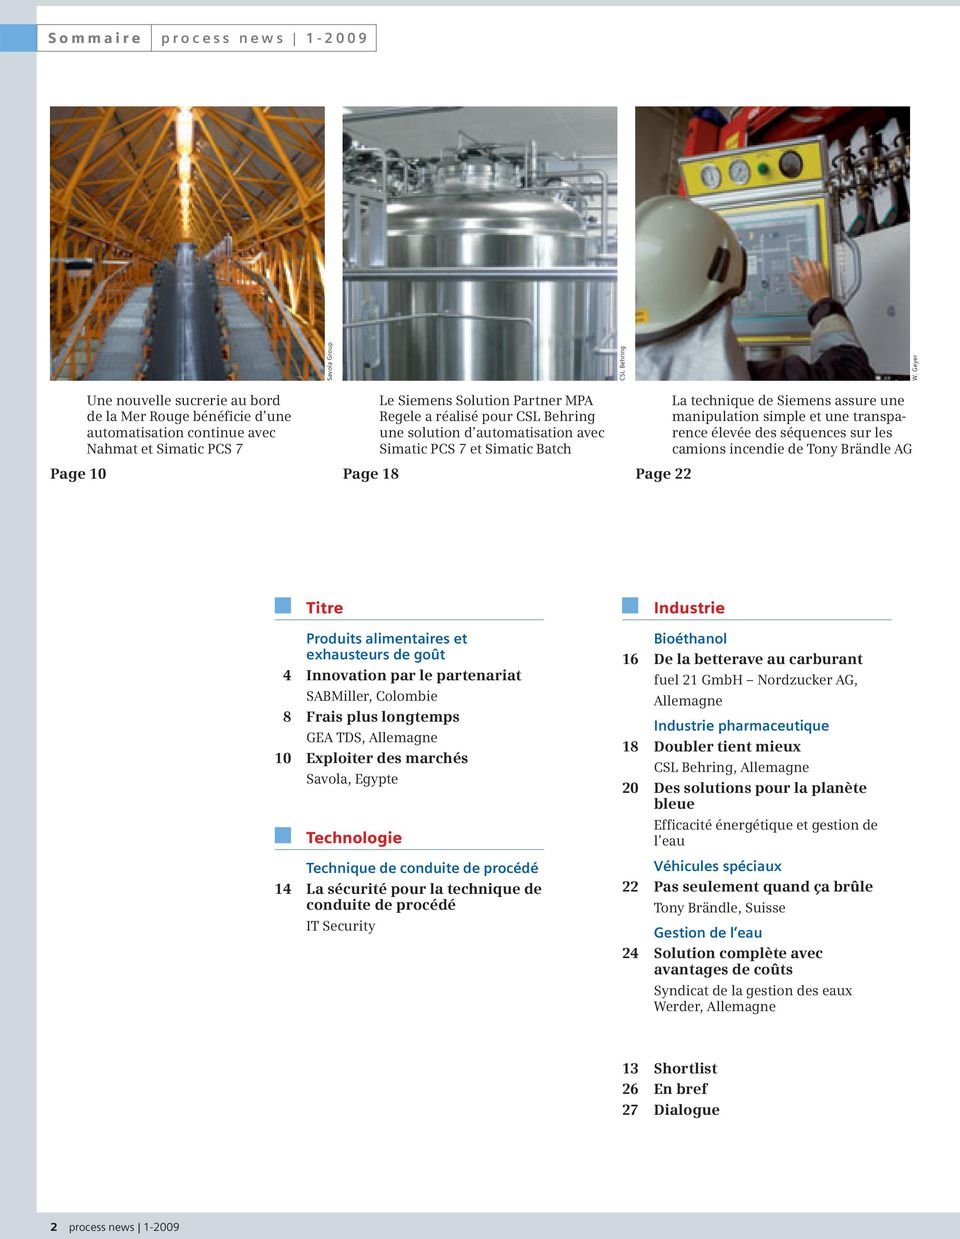 Behring une solution d automatisation avec Simatic PCS 7 et Simatic Batch Page 22 La technique de Siemens assure une manipulation simple et une transparence élevée des séquences sur les camions